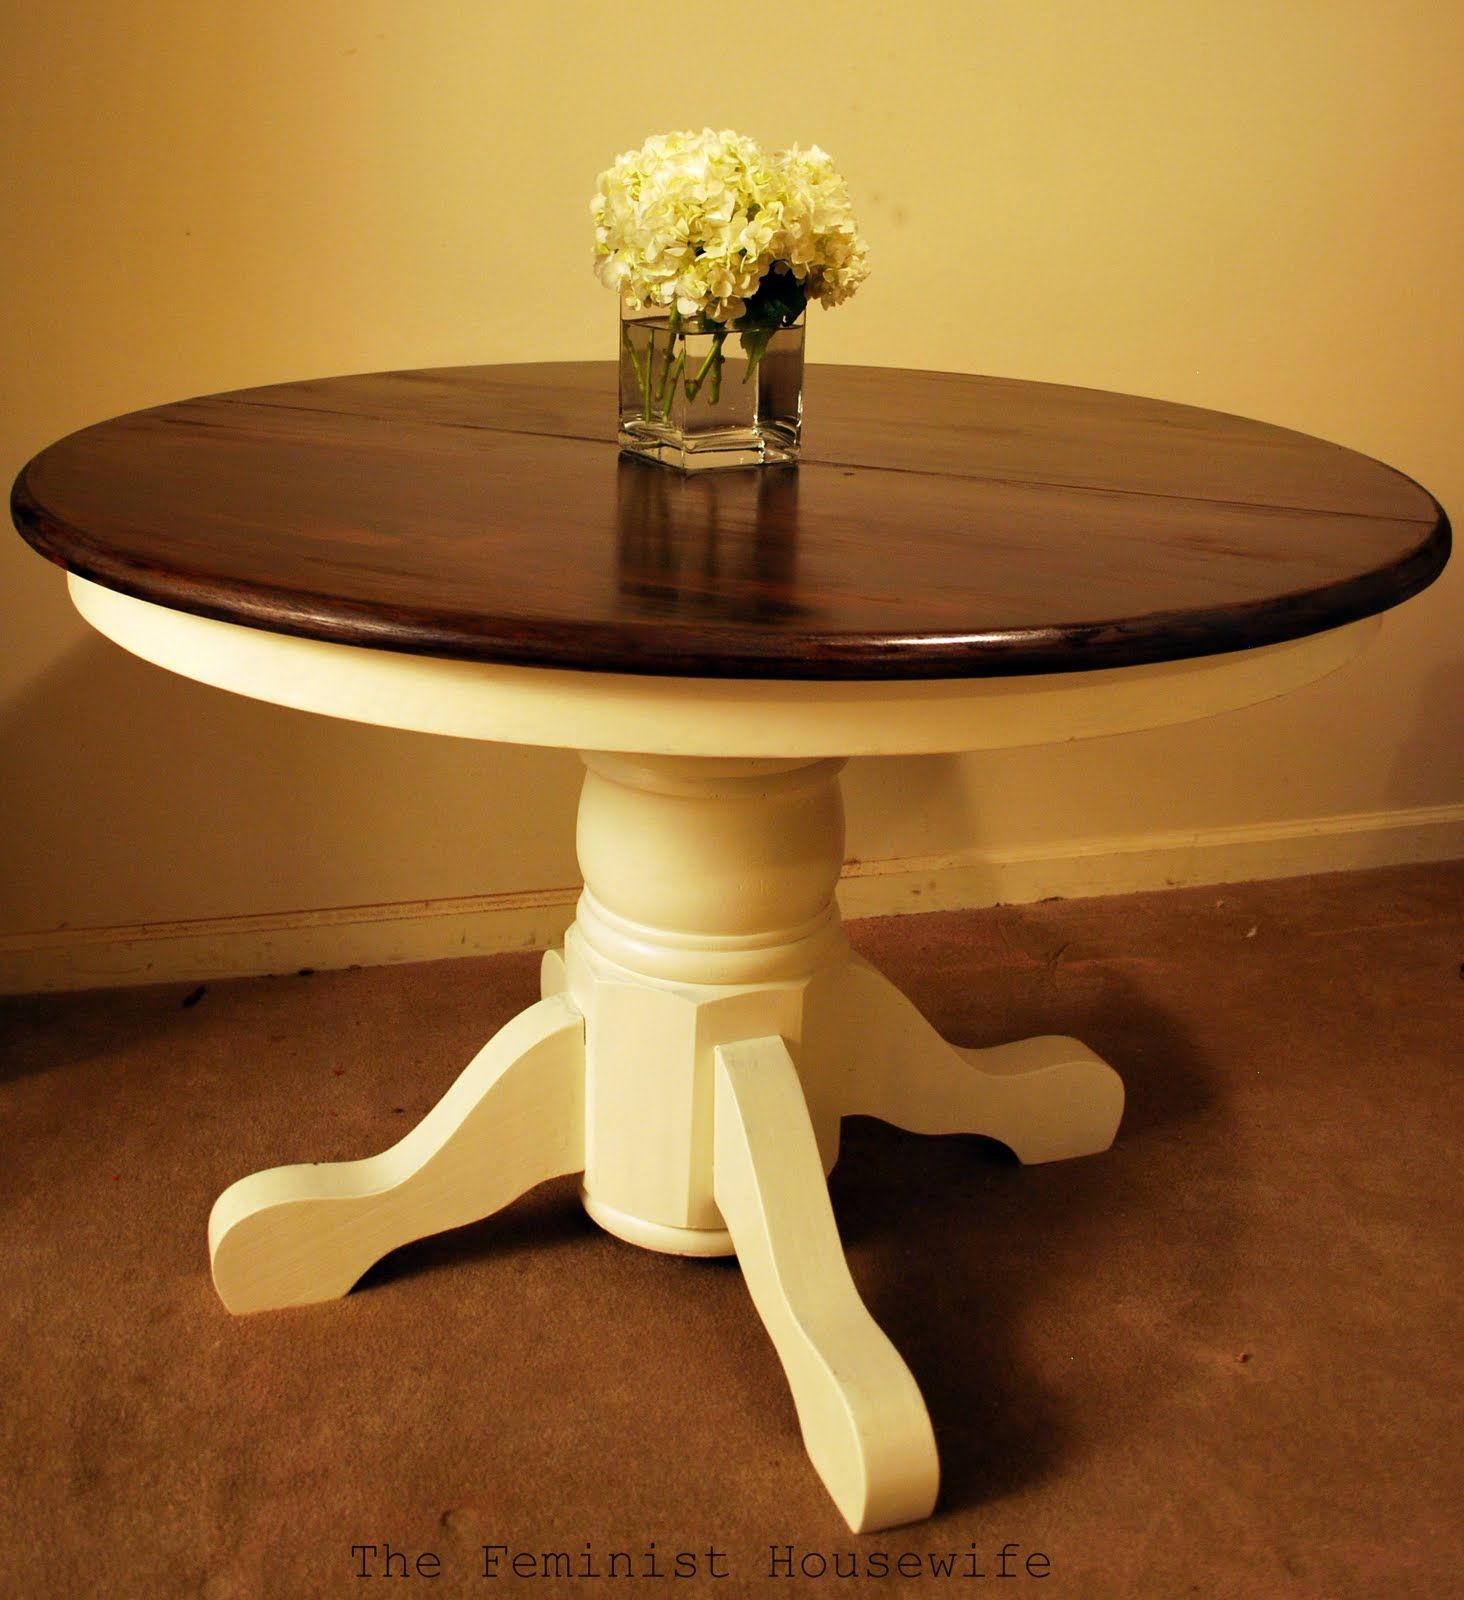 How To Paint And Stain This Table The Feminist Housewife Pedestal FAQ